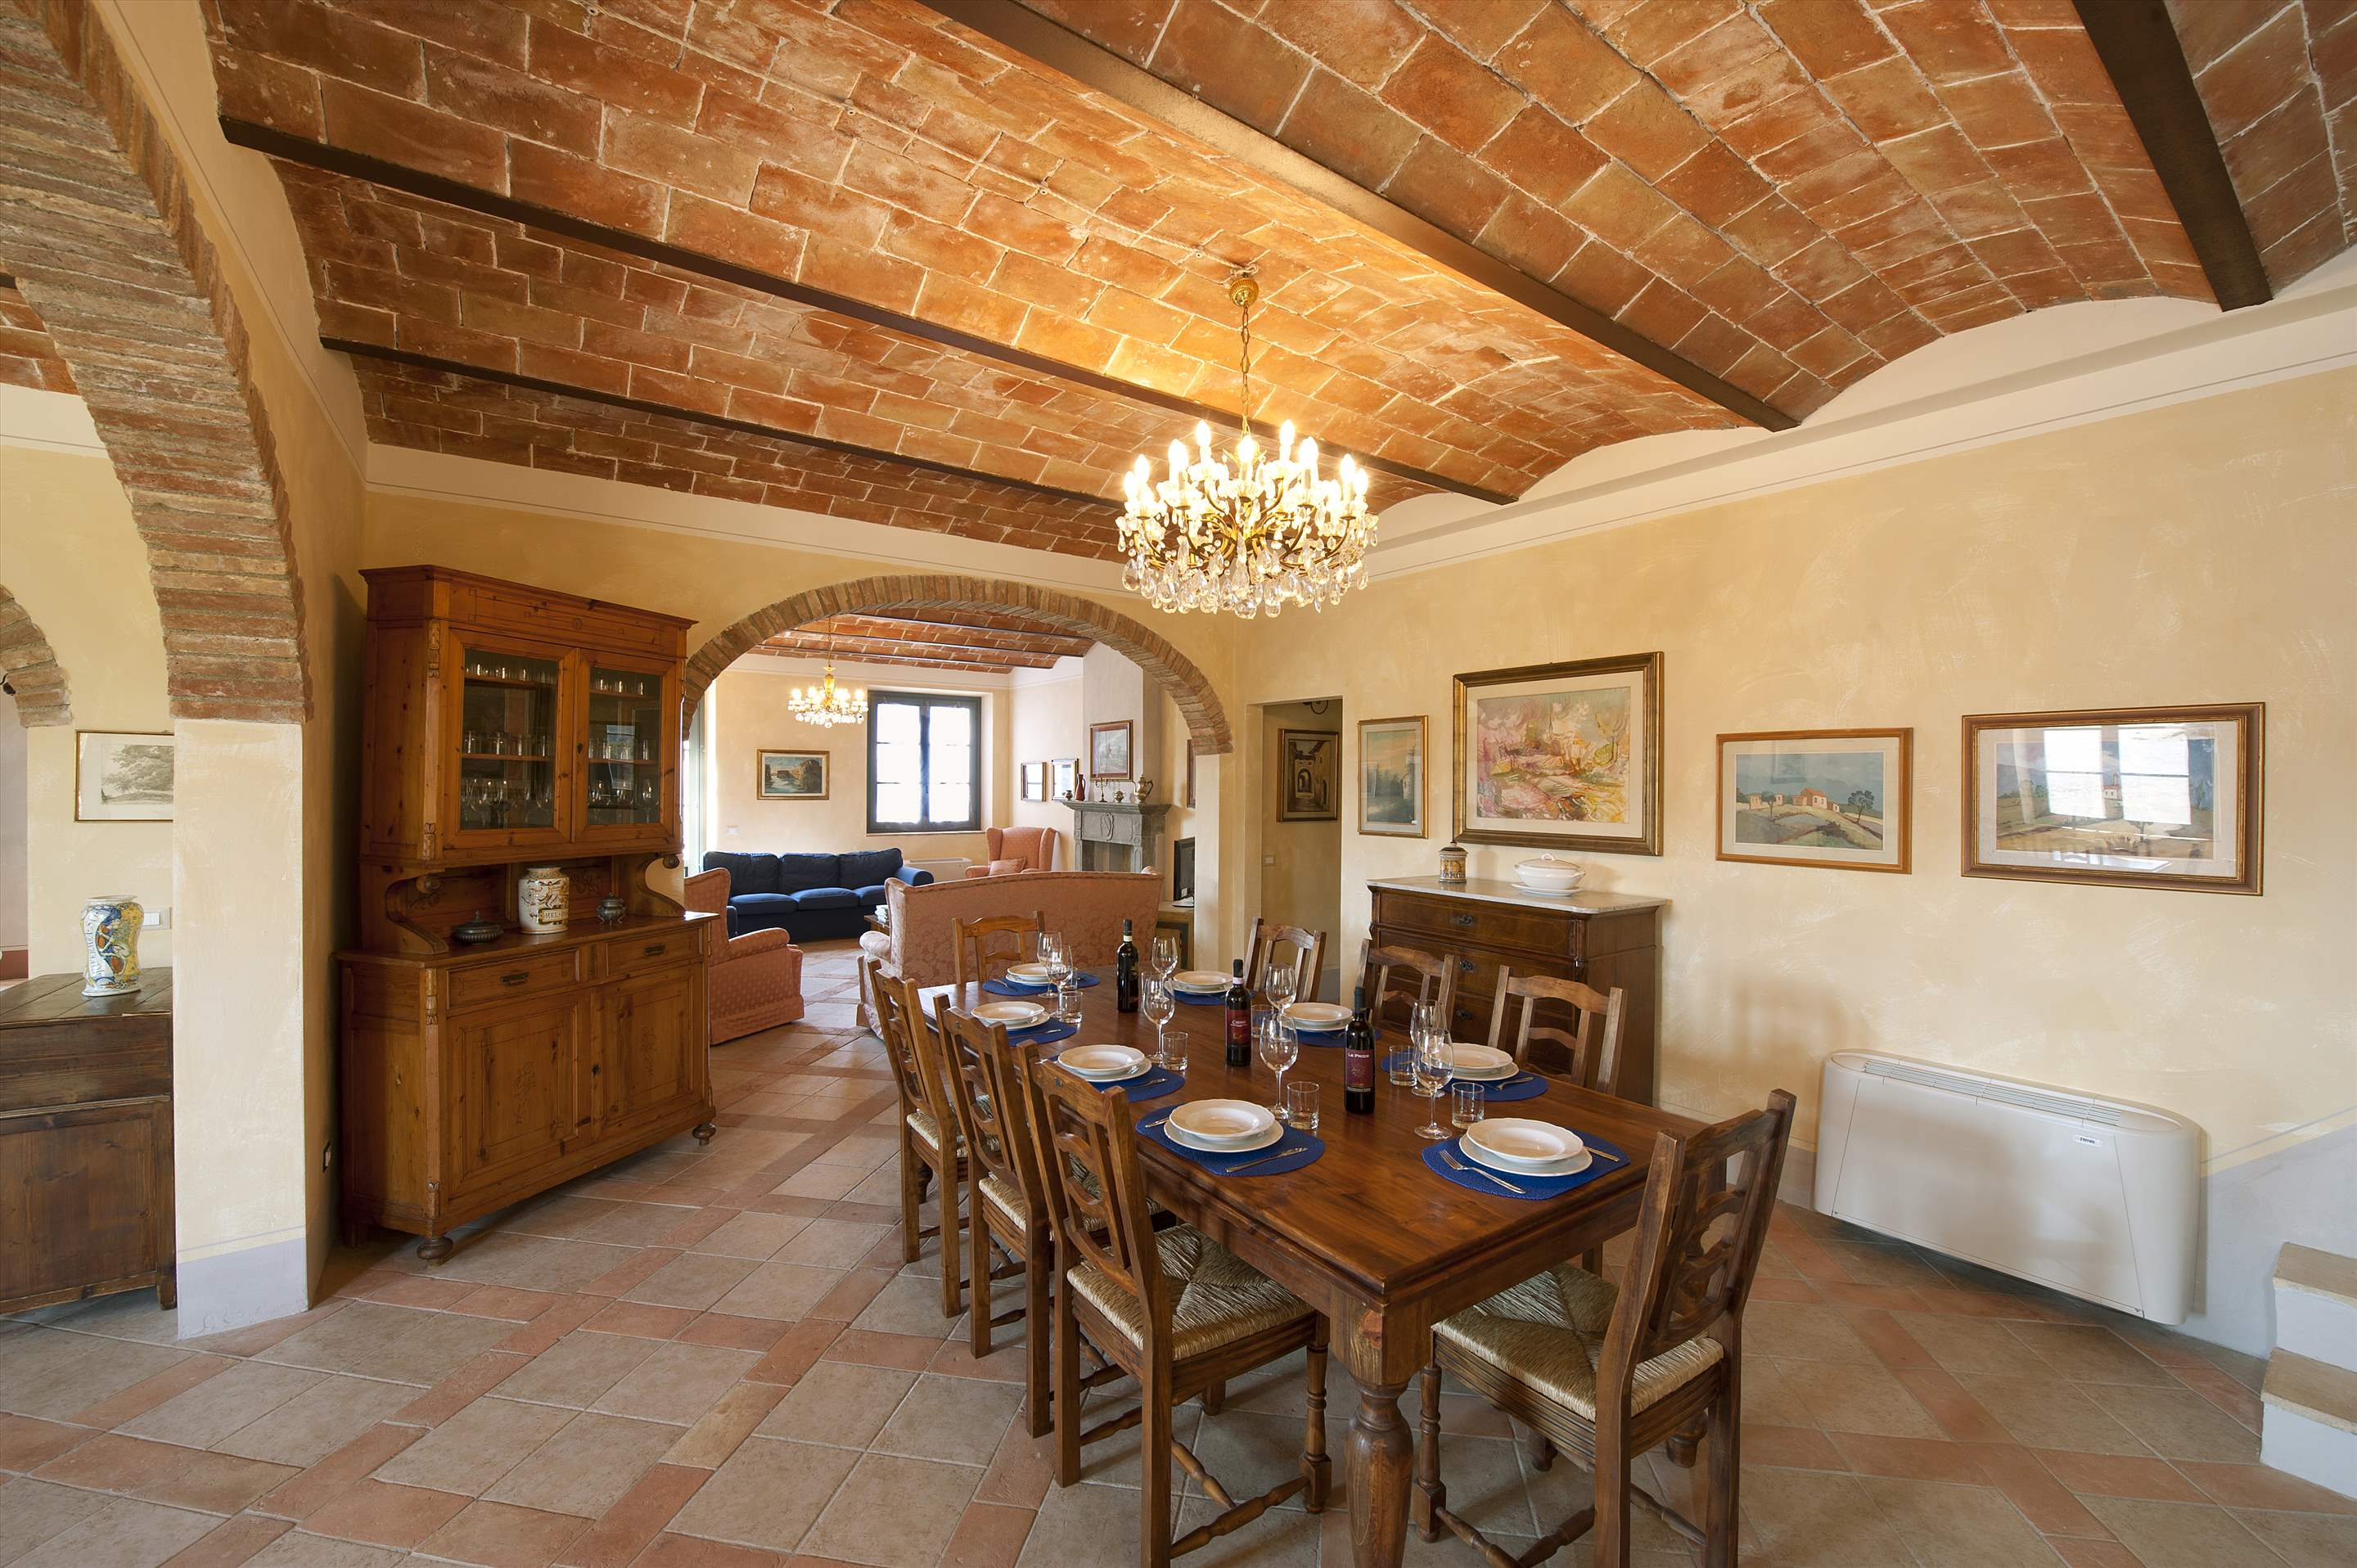 Podere Di Collina, Villa & Apts, 8 bedroom villa in Tuscany Coast, Tuscany Photo #9